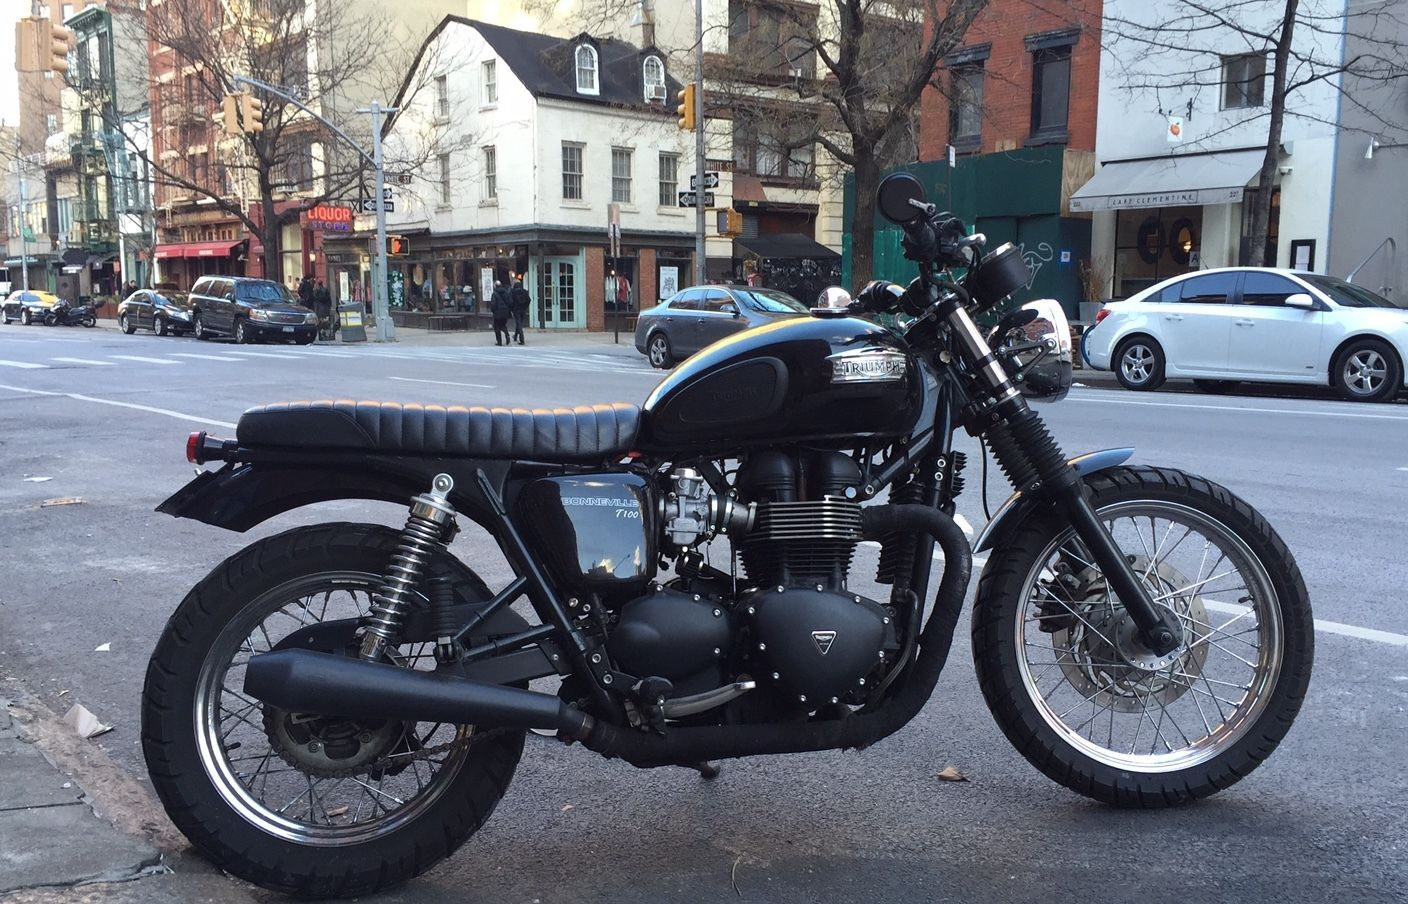 2013 Triumph Bonneville T100 custom cafe racer | Cafe racers for ...